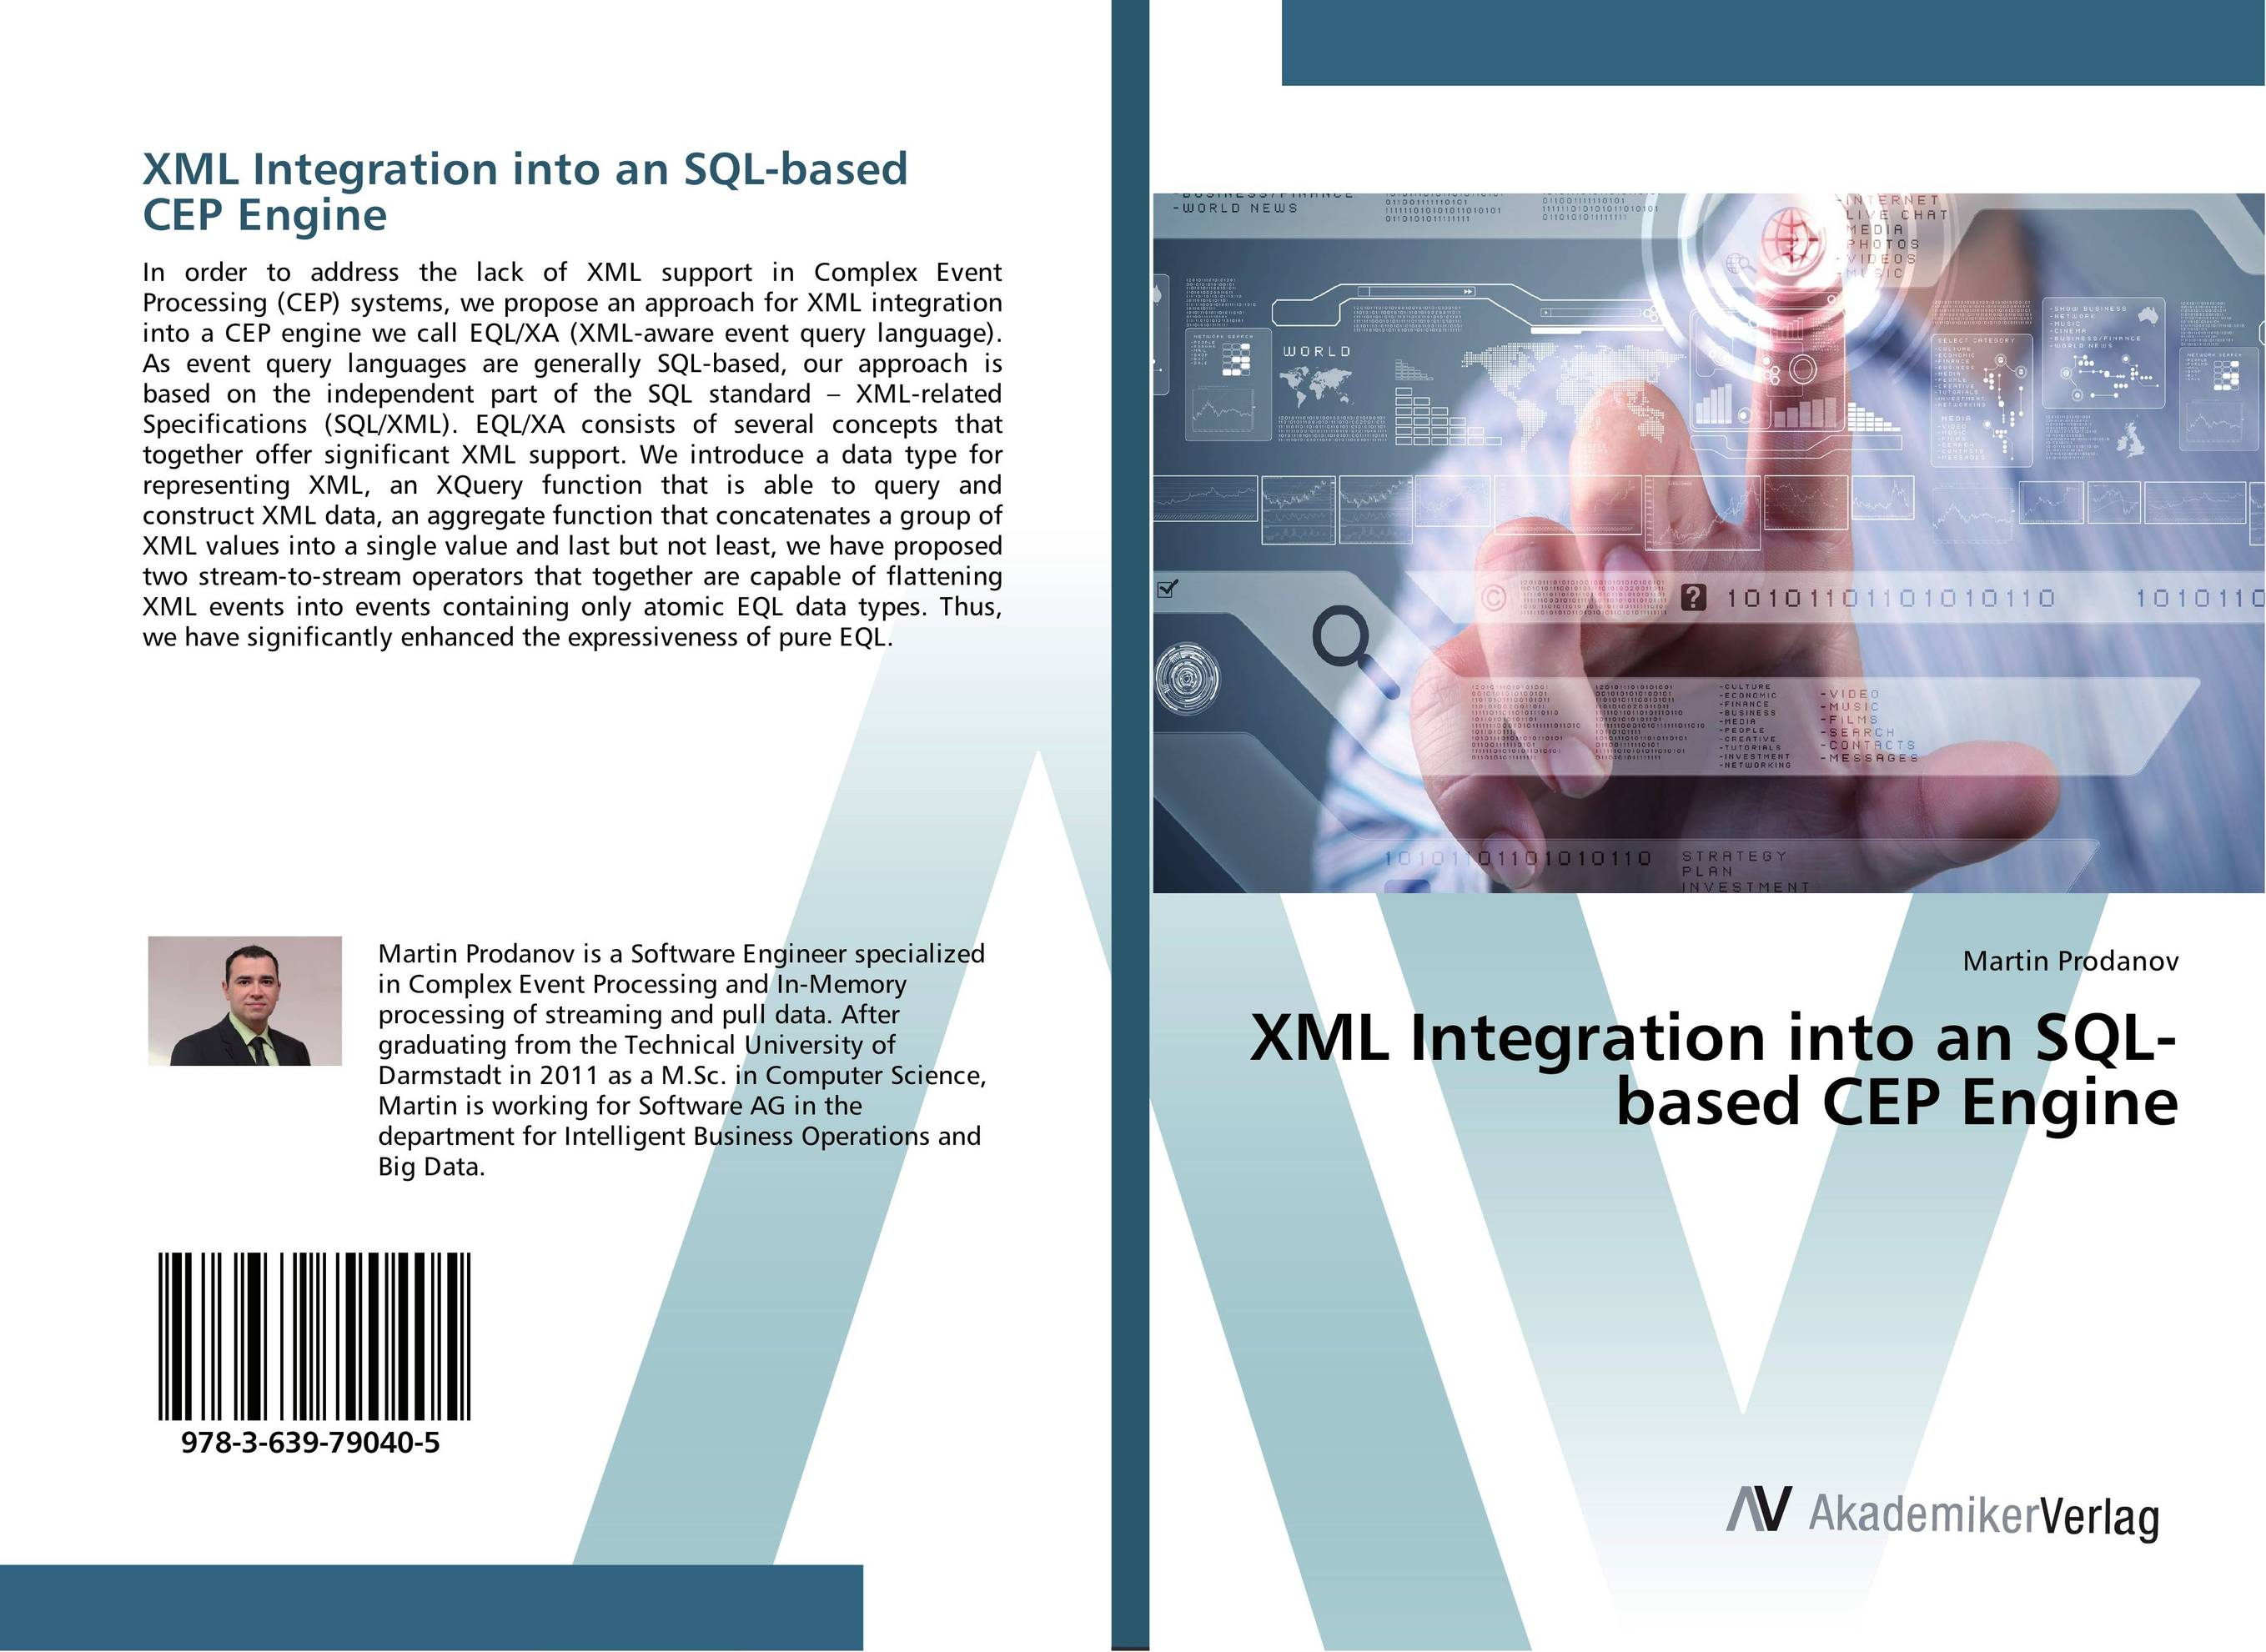 XML Integration into an SQL-based CEP Engine sitemap 345 xml